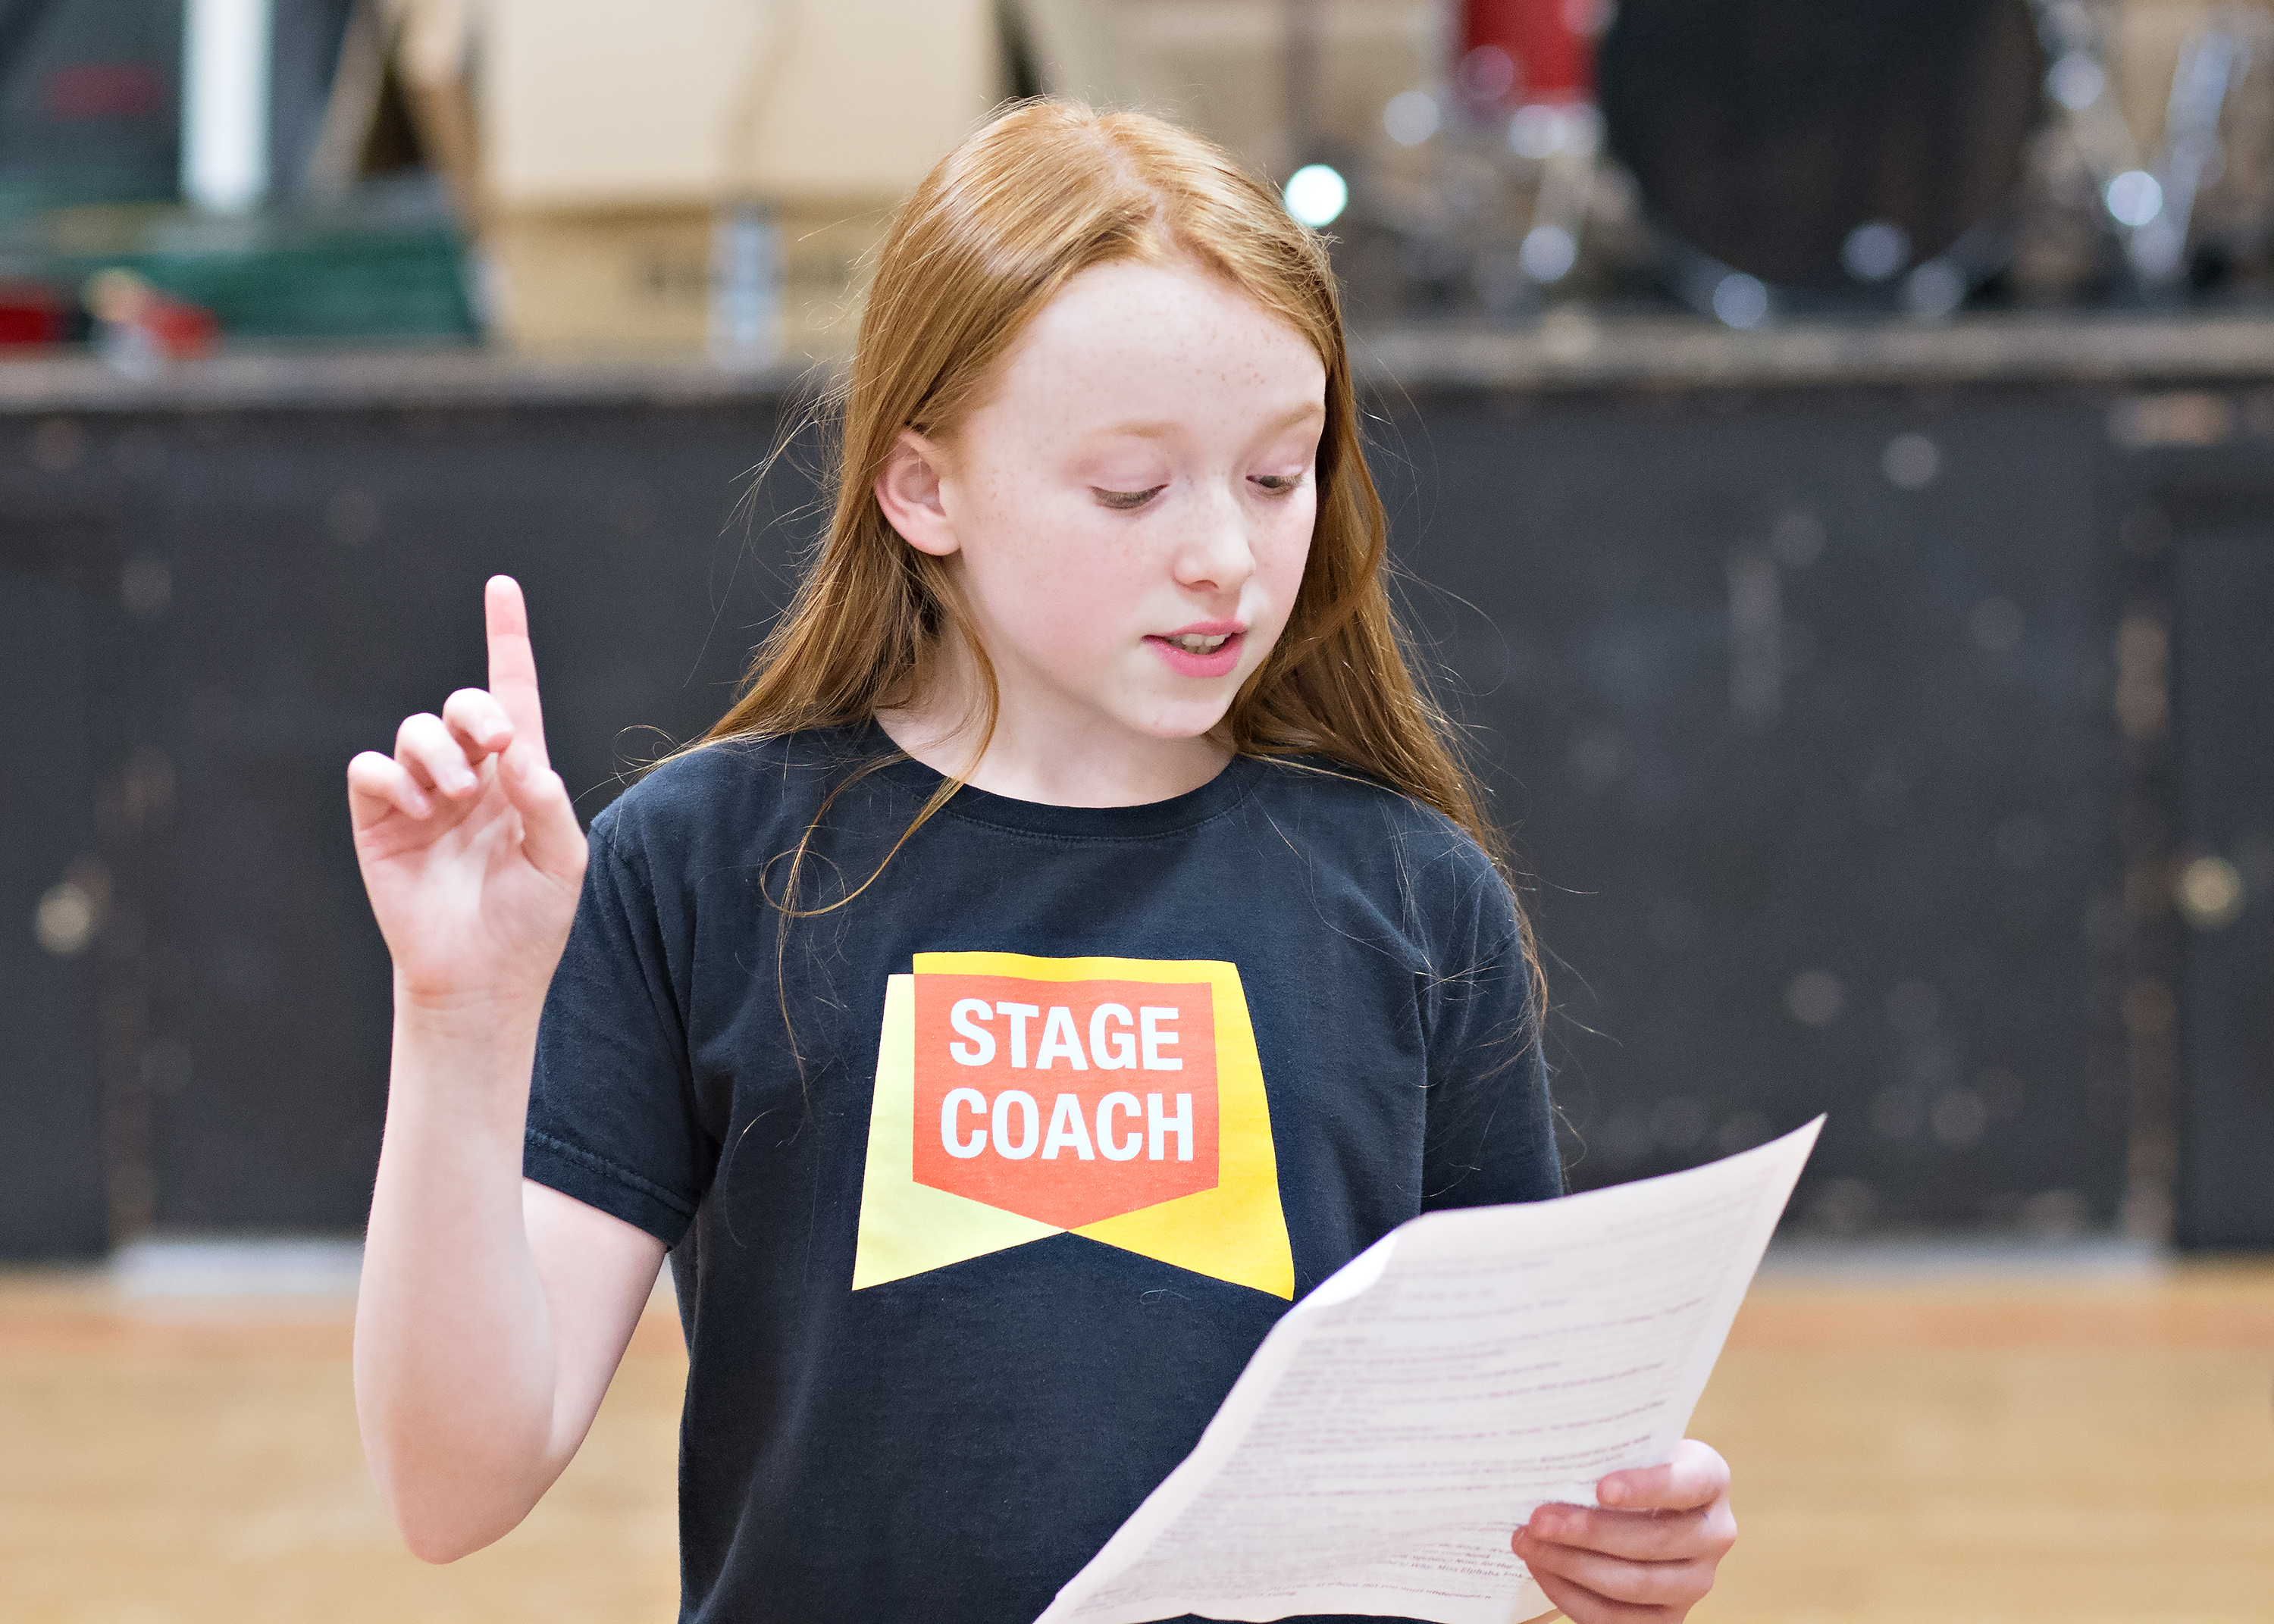 Child acting at Stagecoach